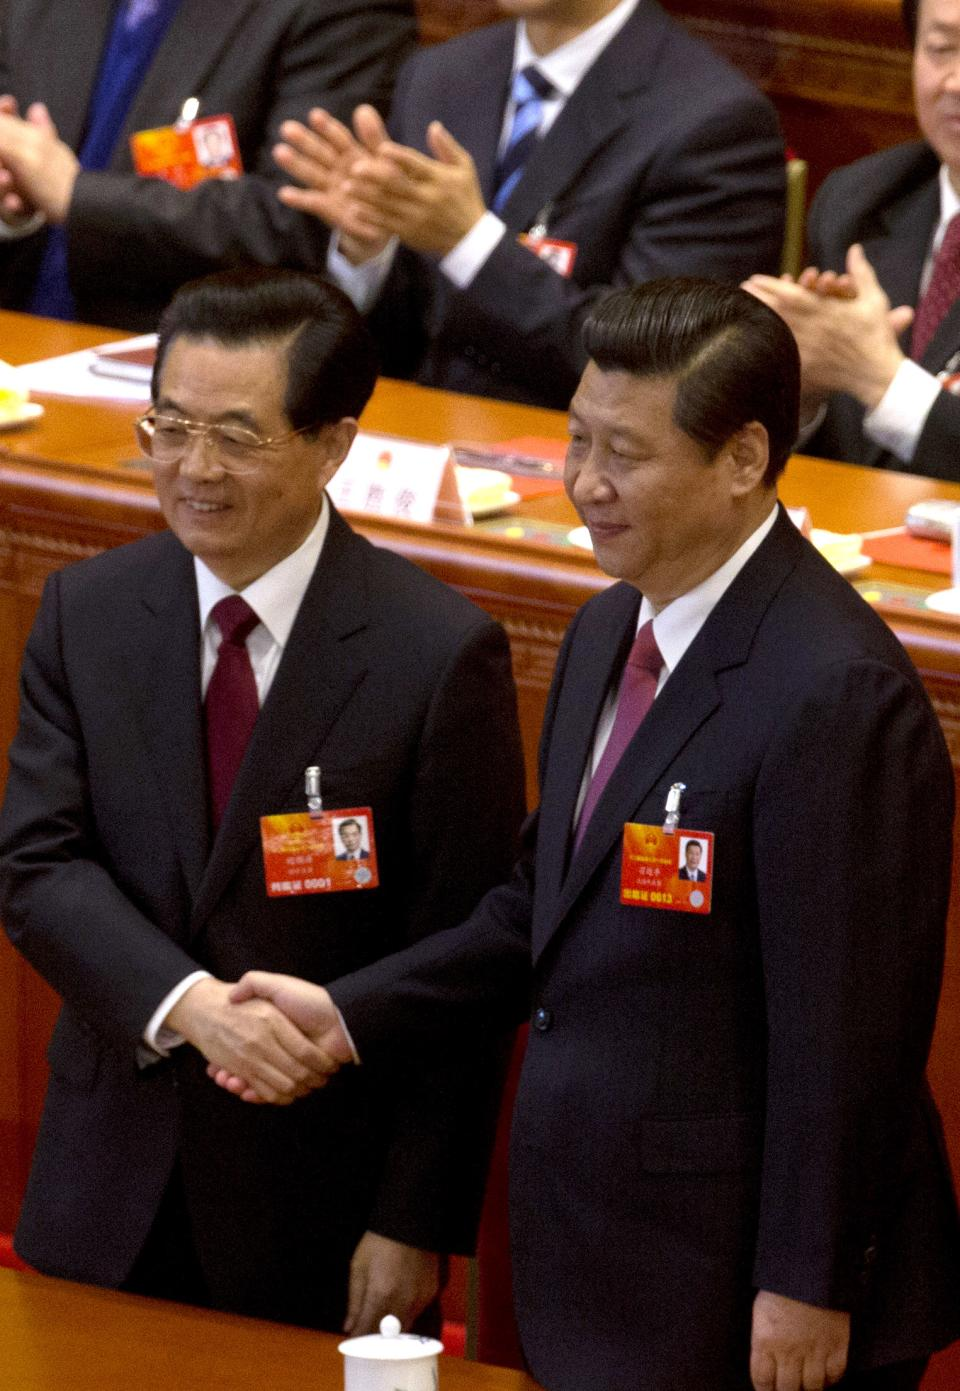 Former Chinese President Hu Jintao, left, poses with his sucessor Xi Jinping after Xi was elected at a plenary session of the National People's Congress held at the Great Hall of the People in Beijing Thursday, March 14, 2013. (AP Photo/Ng Han Guan)